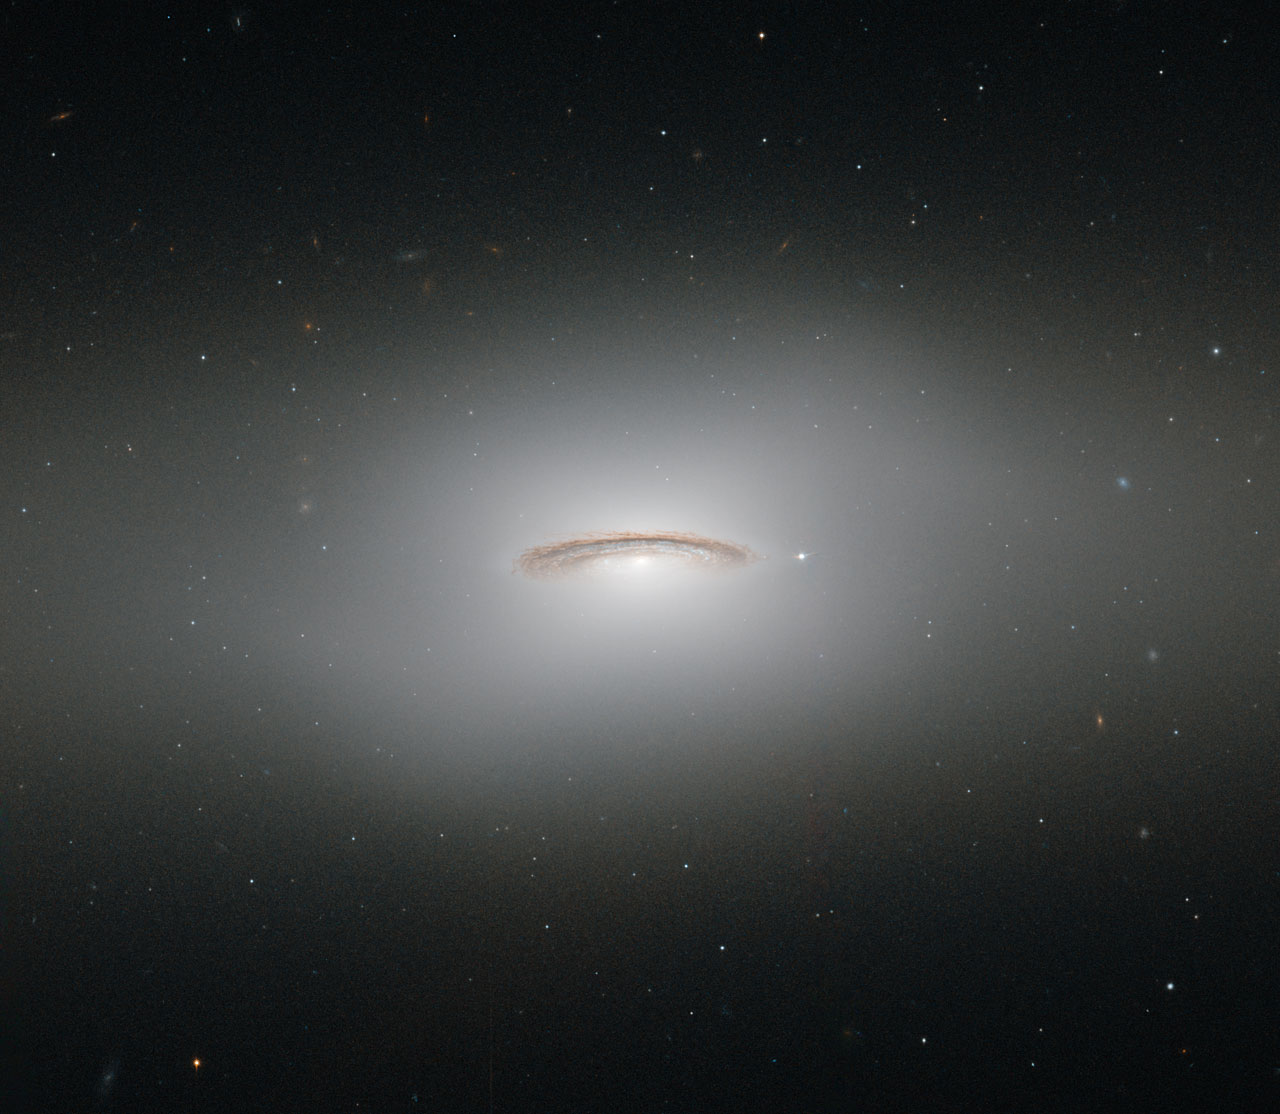 This neat little galaxy is known as NGC 4526. Its dark lanes of dust and bright diffuse glow make the galaxy appear to hang like a halo in the emptiness of space in this new image from the NASA/ESA Hubble Space Telescope. Although this image paints a picture of serenity, the galaxy is anything but. It is one of the brightest lenticular galaxies known, a category that lies somewhere between spirals and ellipticals. It has hosted two known supernova explosions, one in 1969 and another in 1994, and is known to have a colossal supermassive black hole at its centre that has the mass of 450 million Suns. NGC 4526 is part of the Virgo cluster of galaxies. Ground-based observations of galaxies in this cluster have revealed that a quarter of these galaxies seem to have rapidly rotating discs of gas at their centres. The most spectacular of these is this galaxy, NGC 4526, whose spinning disc of gas, dust, and stars reaches out uniquely far from its heart, spanning some 7% of the galaxy's entire radius. This disc is moving incredibly fast, spinning at more than 250 kilometres per second. The dynamics of this quickly whirling region were actually used to infer the mass of NGC 4526's central black hole — a technique that had not been used before to constrain a galaxy's central black hole. This image was taken using Hubble's Wide Field Planetary Camera 2.  A version of this image was entered into the Hubble's Hidden Treasures image processing competition by contestant Judy Schmidt. Hidden Treasures was an initiative to invite astronomy enthusiasts to search the Hubble archive for stunning images that have never been seen by the general public.